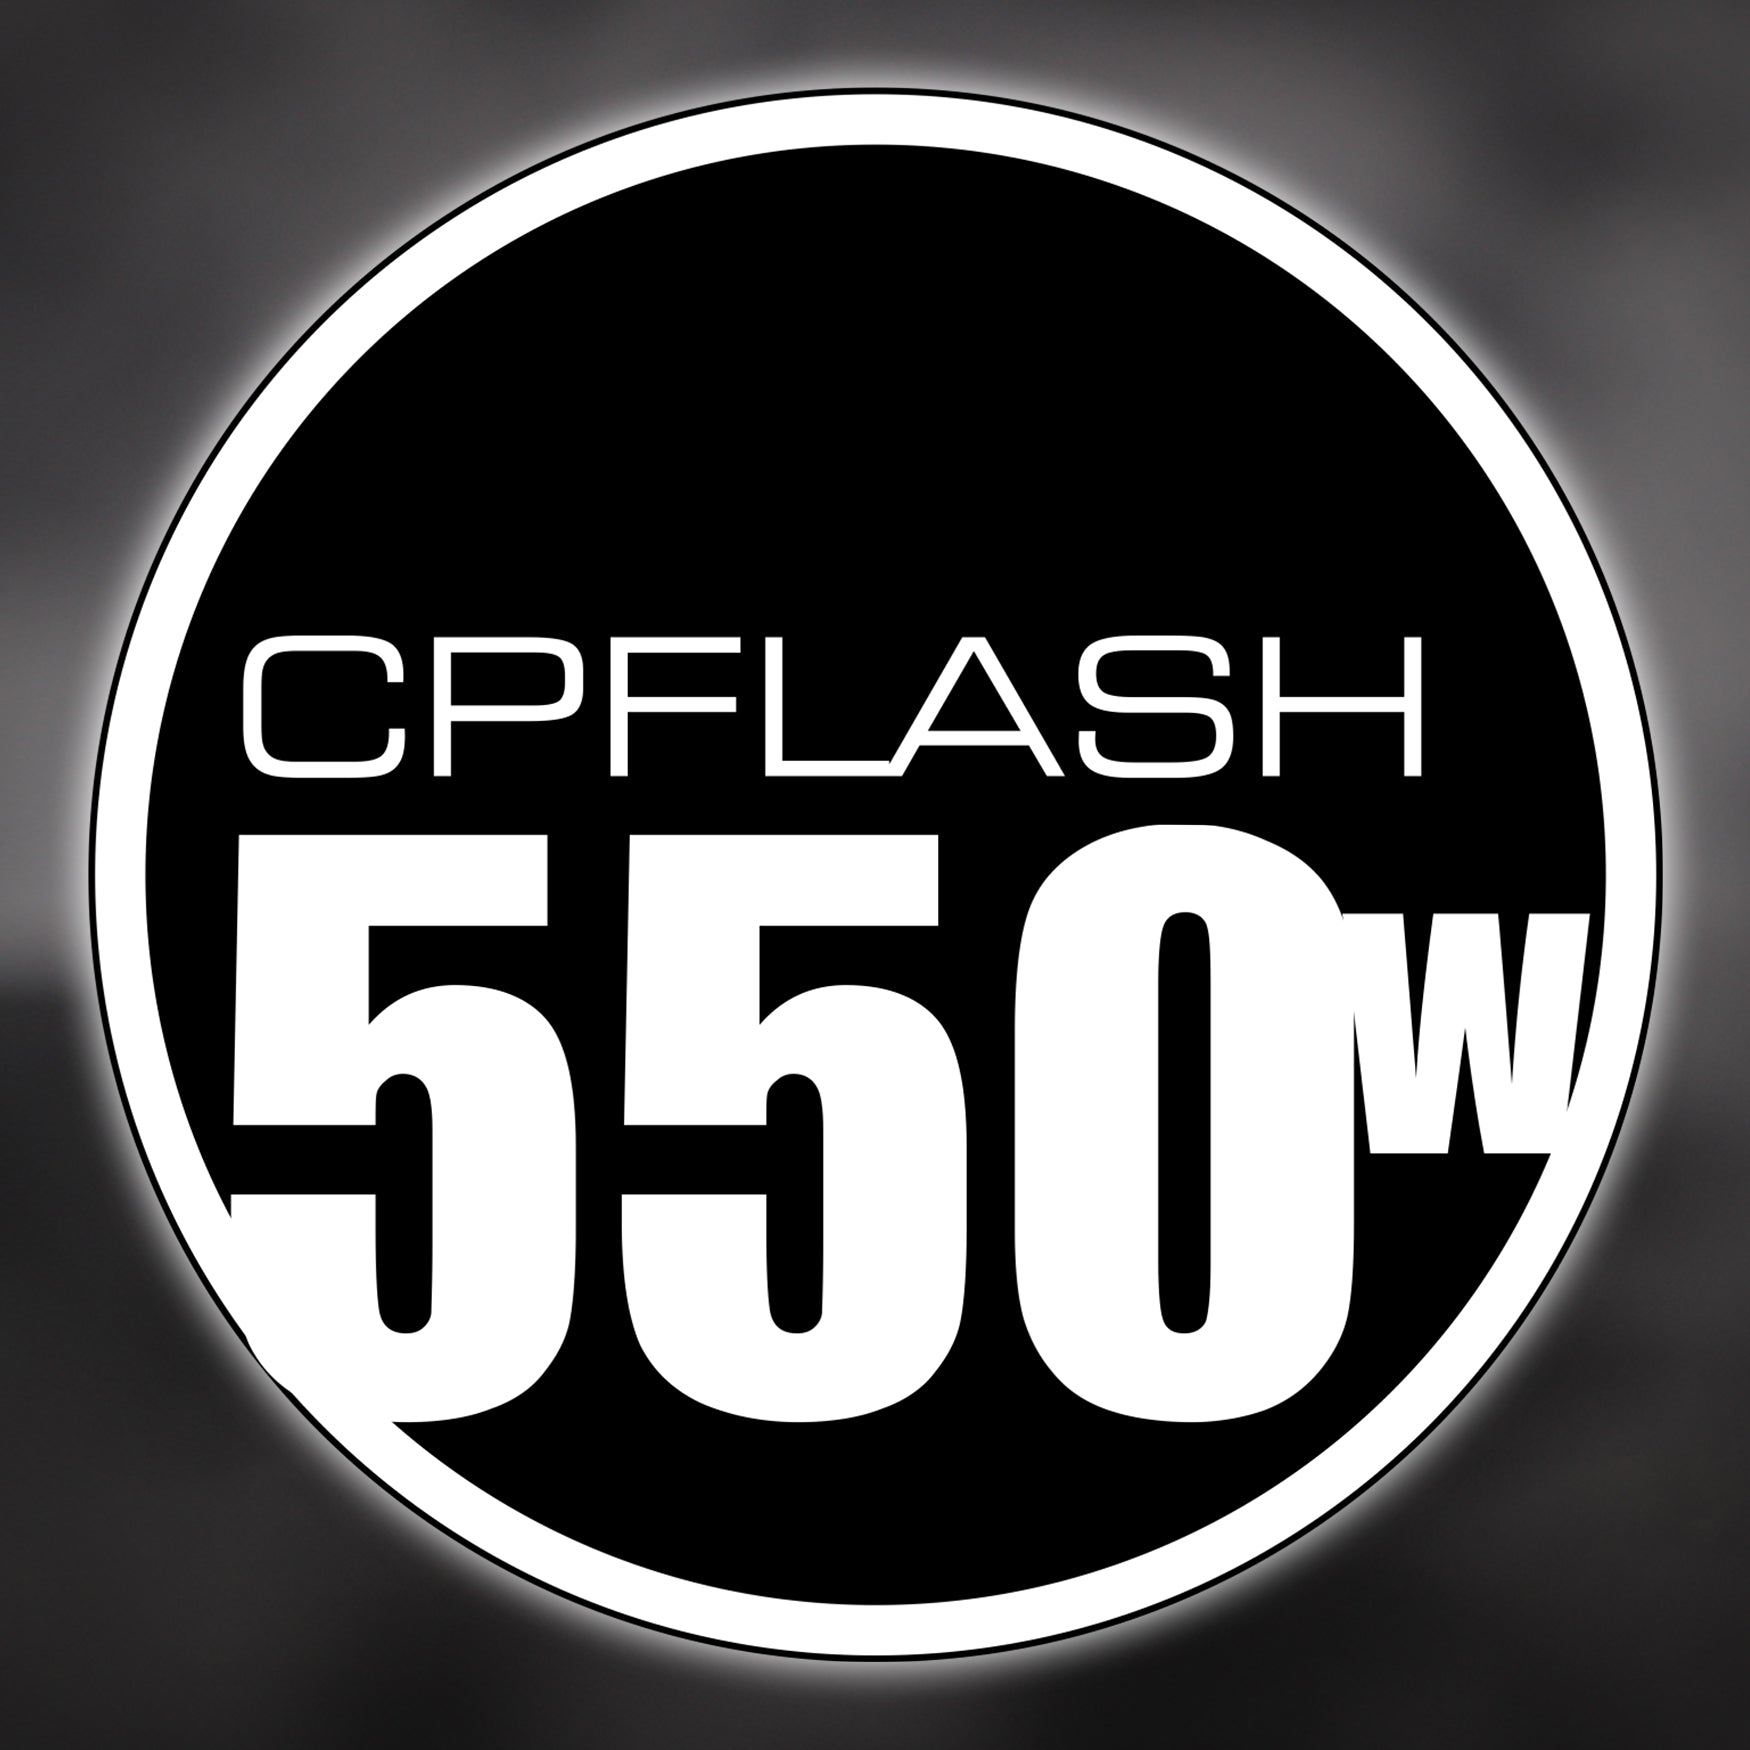 [UPDATE] We have uploaded an update for the CPFlash app (iOS and Android).